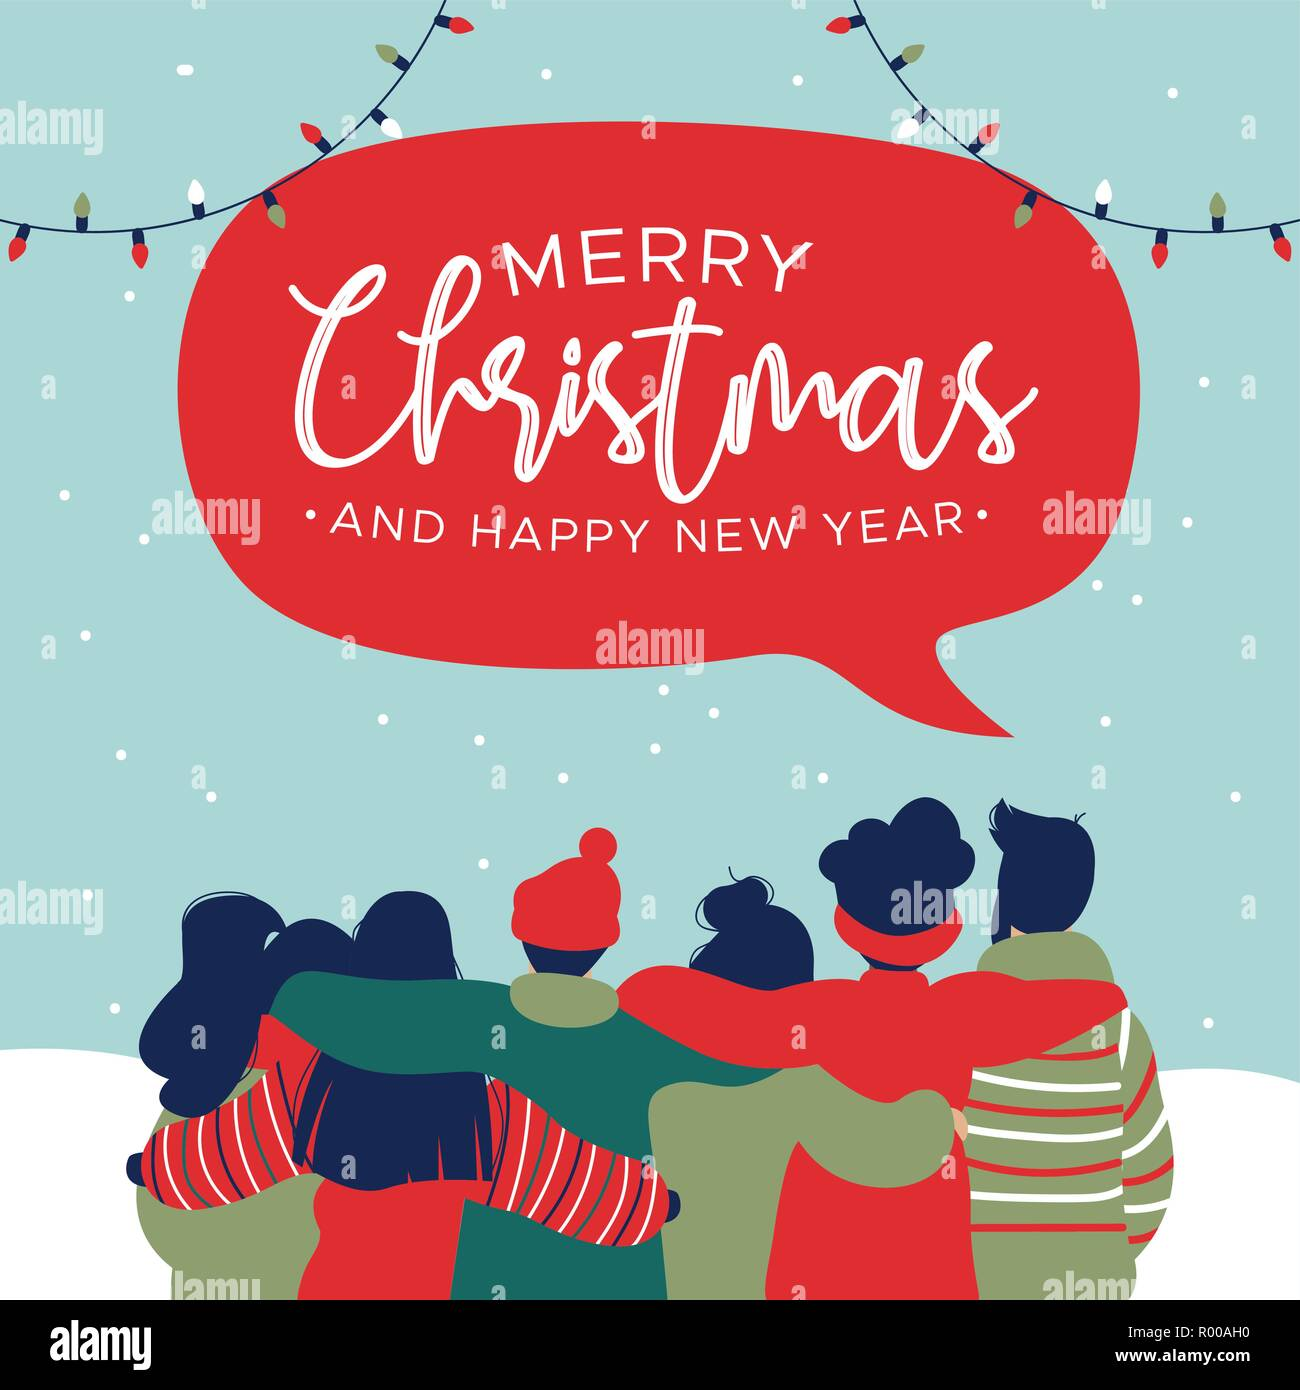 merry christmas and happy new year greeting card illustration with diverse friend group of young people hugging together for holiday celebration